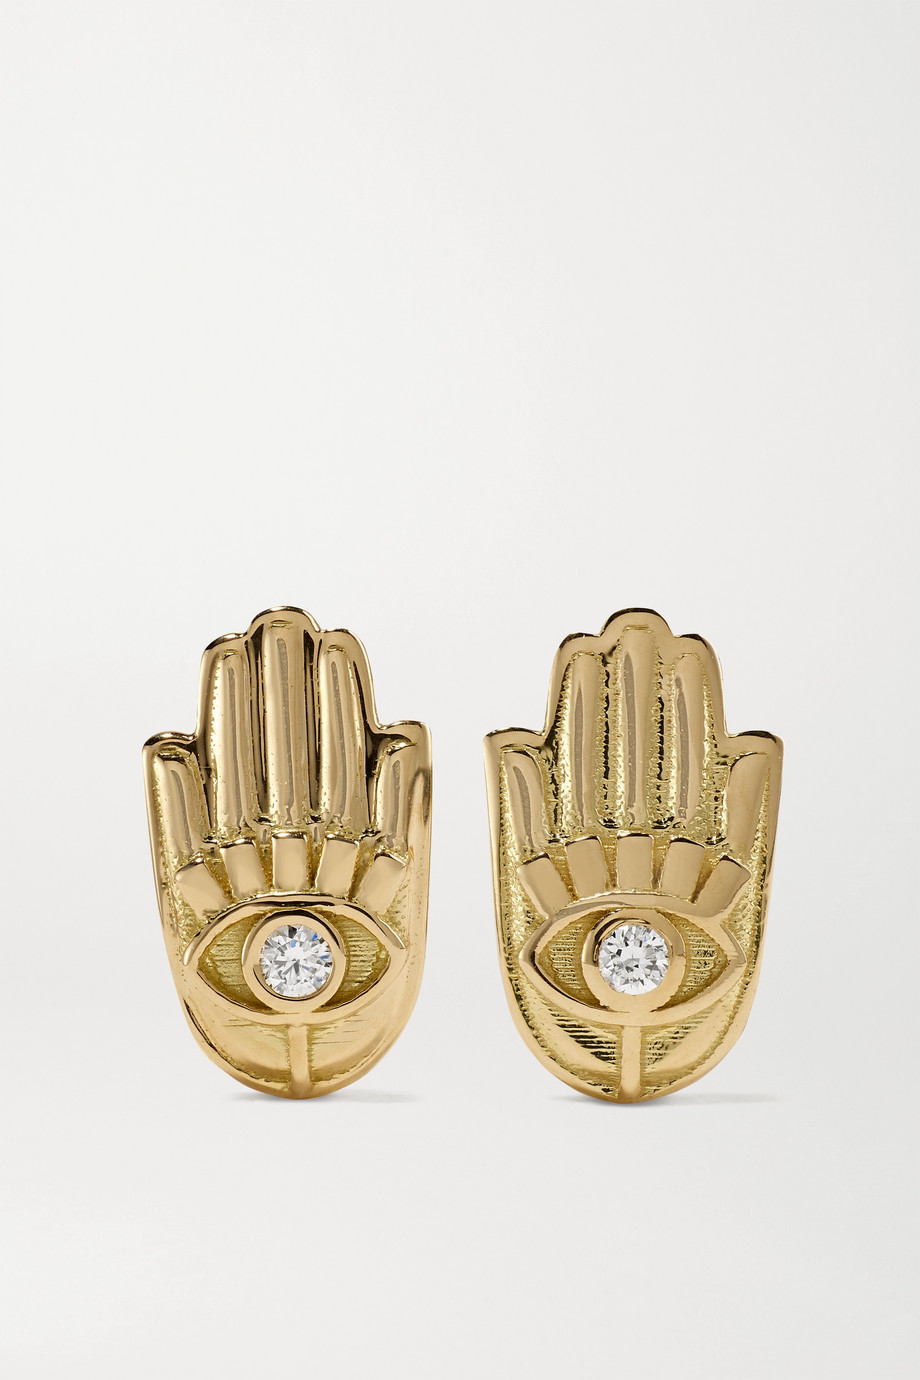 BRENT NEALE Hamsa 18-karat gold diamond earrings